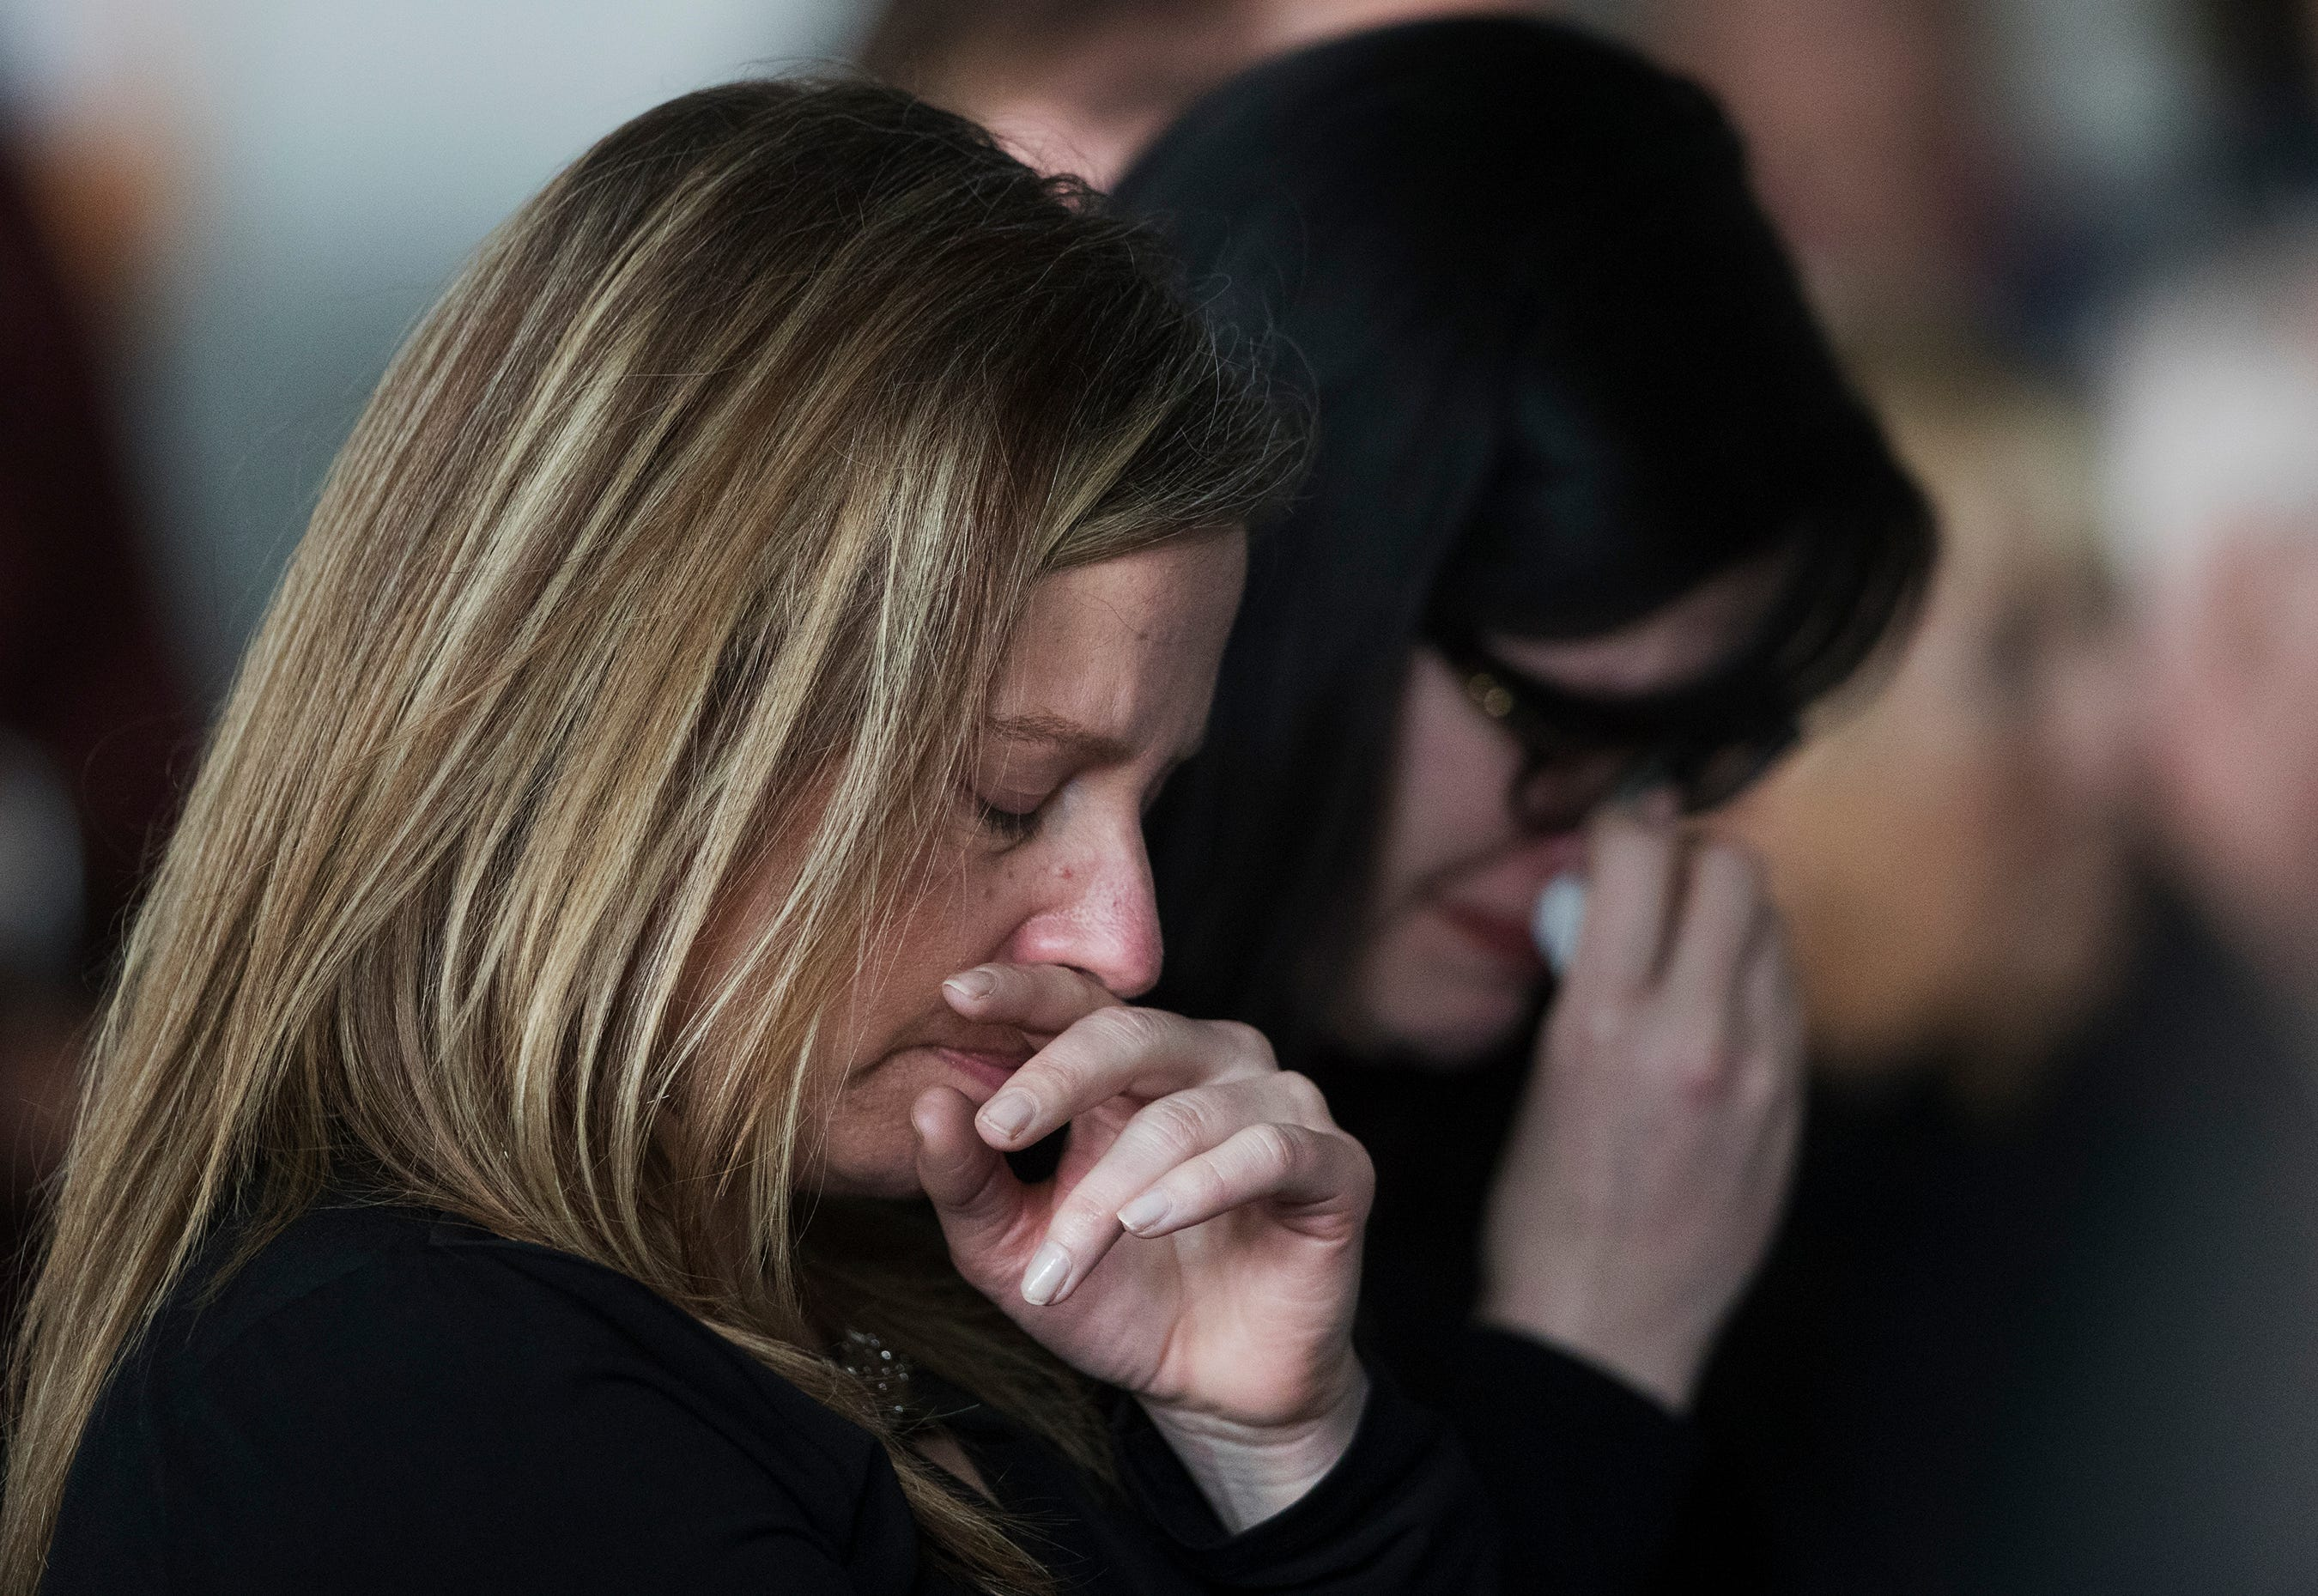 Kristy Hommerding weeps during a memorial service for her uncle, Leroy Hommerding, on Saturday at the Fort Myers Beach Public Library. Hommerding, 69, the library's director, was fatally stabbed on Jan. 20, as he opened the library for a book sale.